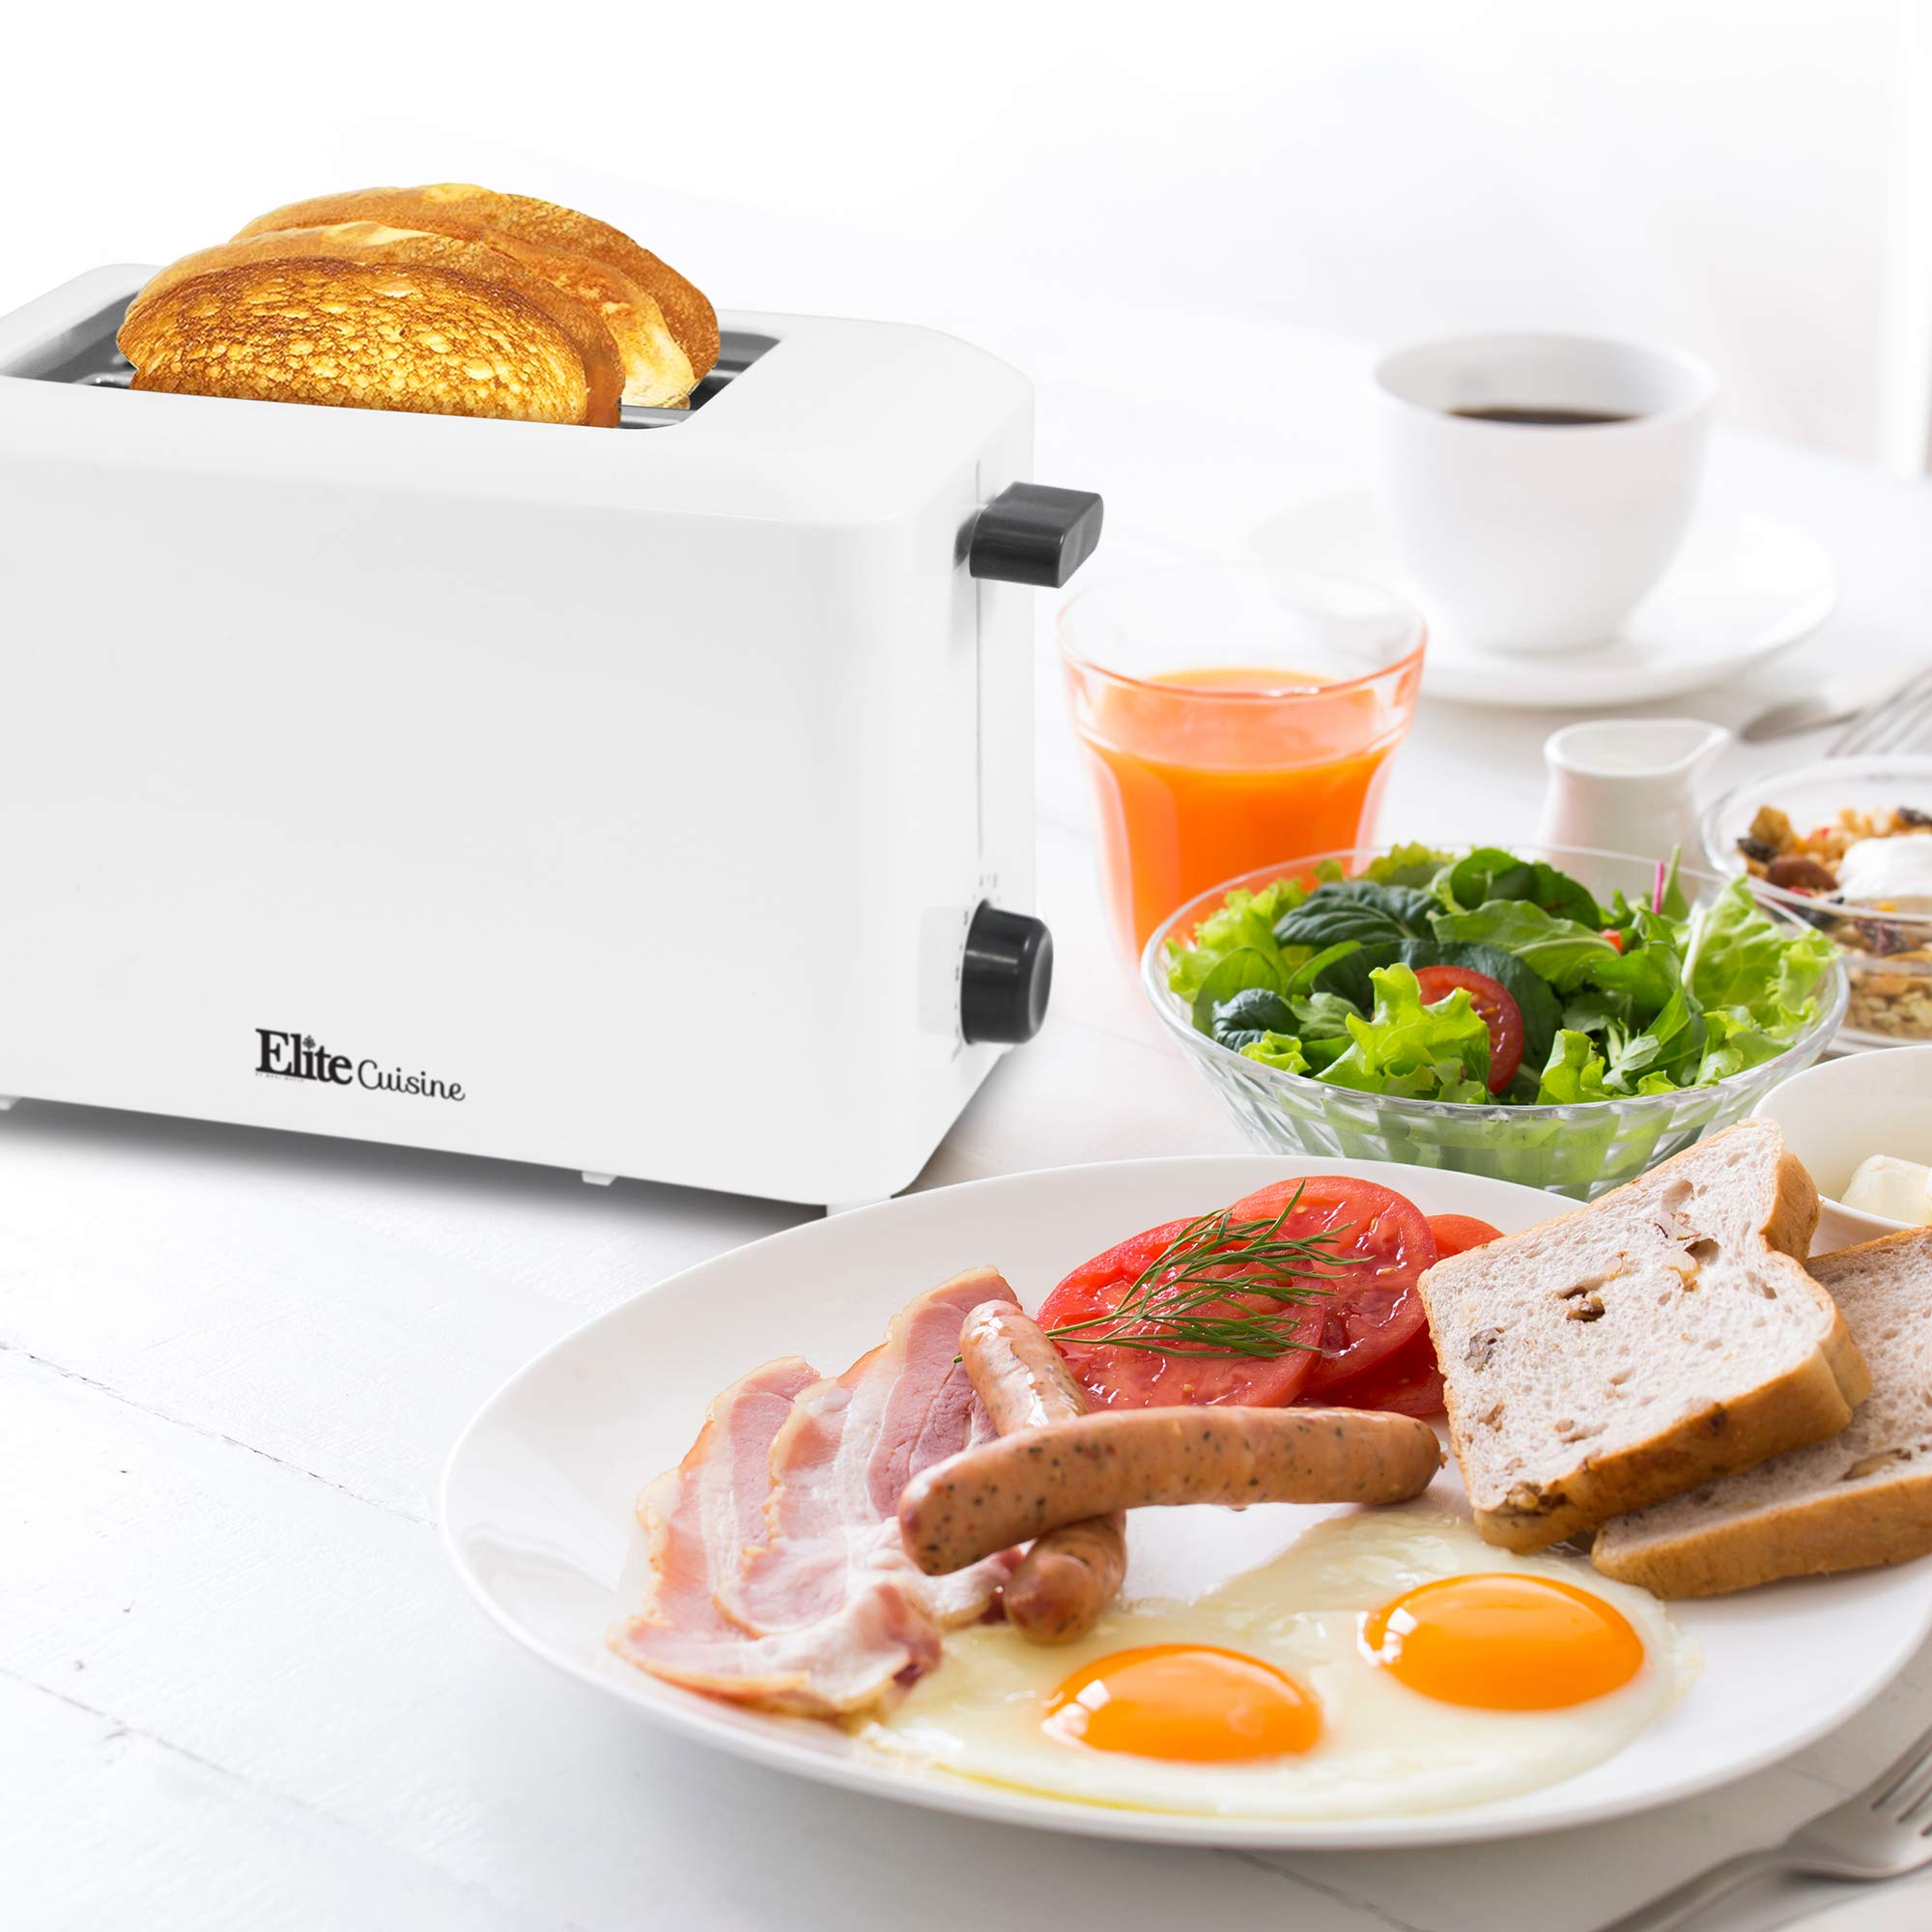 Elite Cuisine ECT-1027 Cool Touch Toaster with Extra Wide 1.25'' Slots for Bagels and Specialty Breads, 2 Slices, White by Elite Cuisine (Image #7)